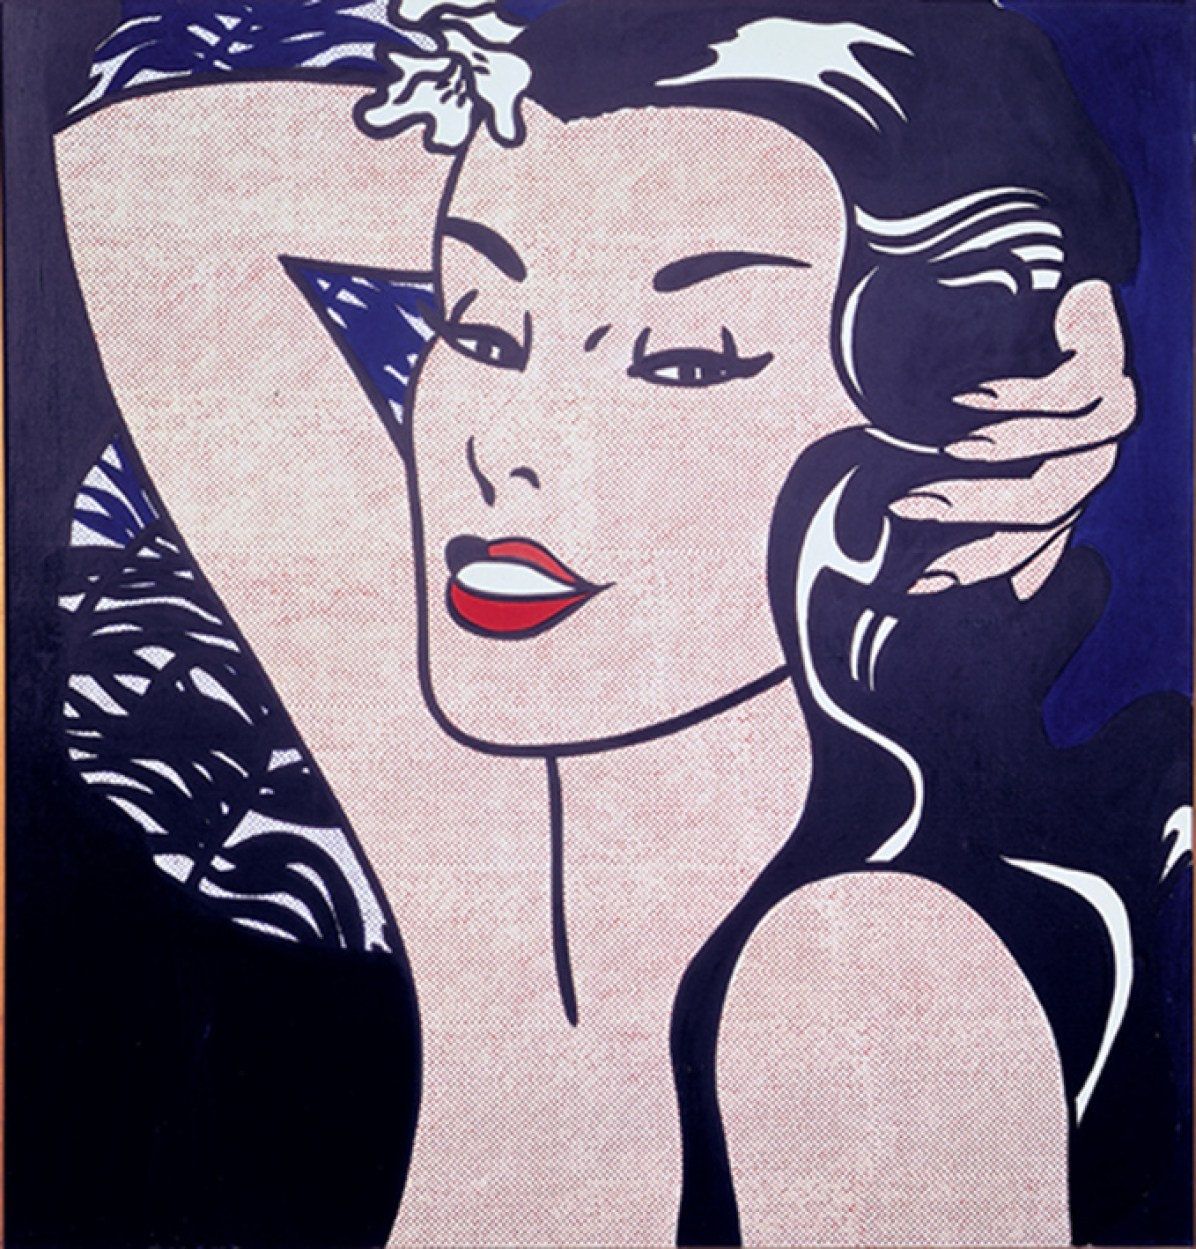 Roy Lichtenstein, Little Aloha, 1962, acrilico su tela, 112x107 cm © Sonnabend Collection, New York © Estate of Roy Lichtenstein by SIAE 2014